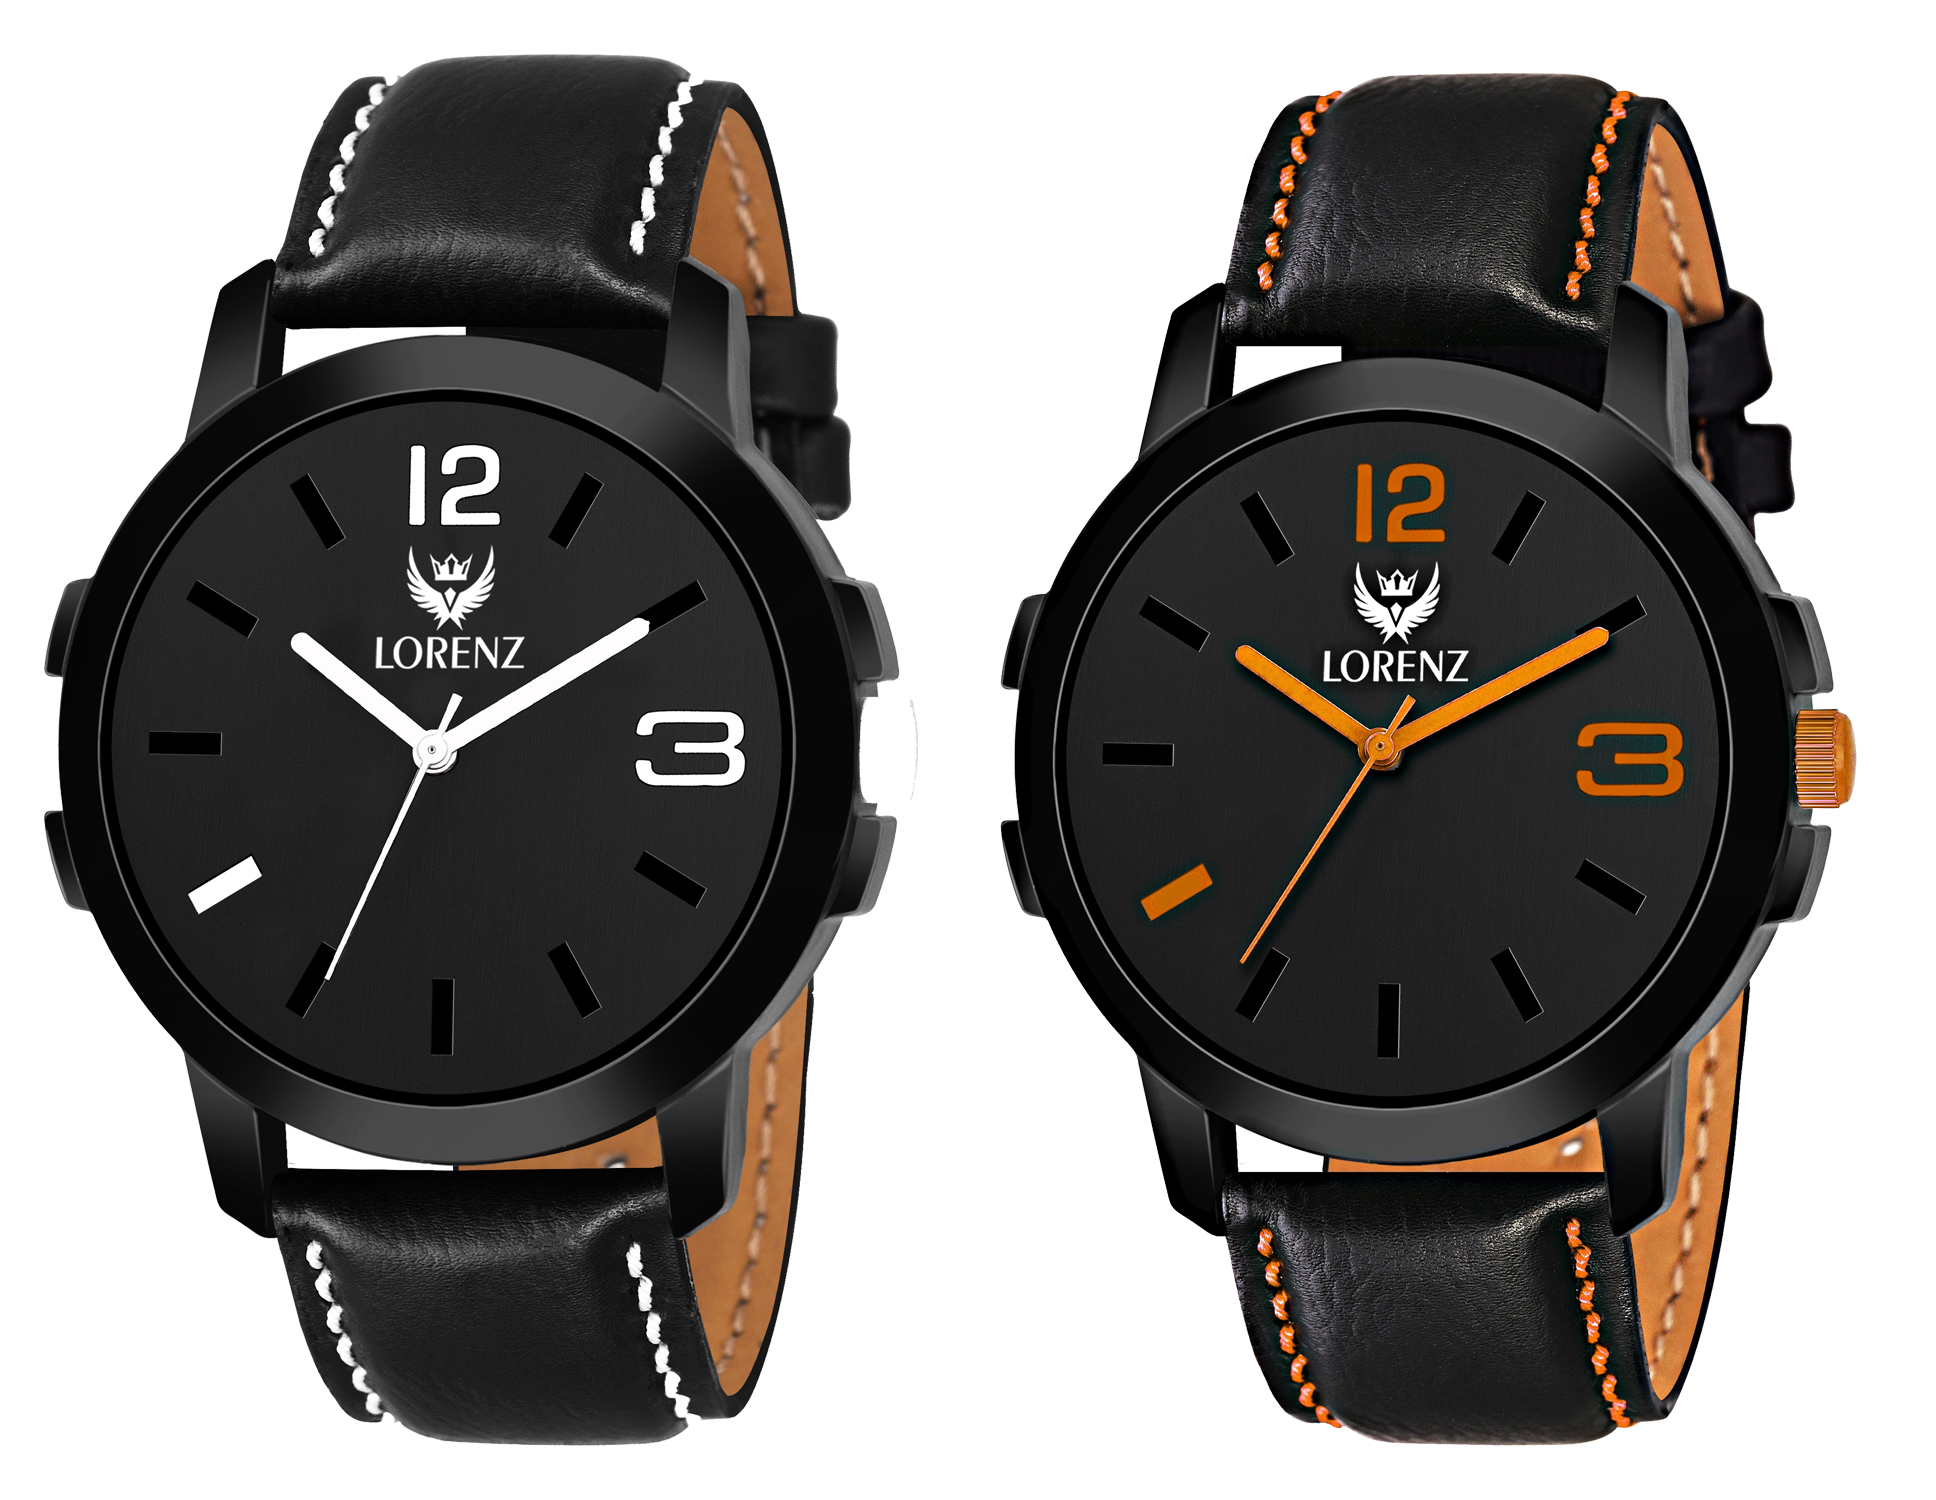 Lorenz 2 Analog Watches Combo for Men   Watch for Boys   60W14K